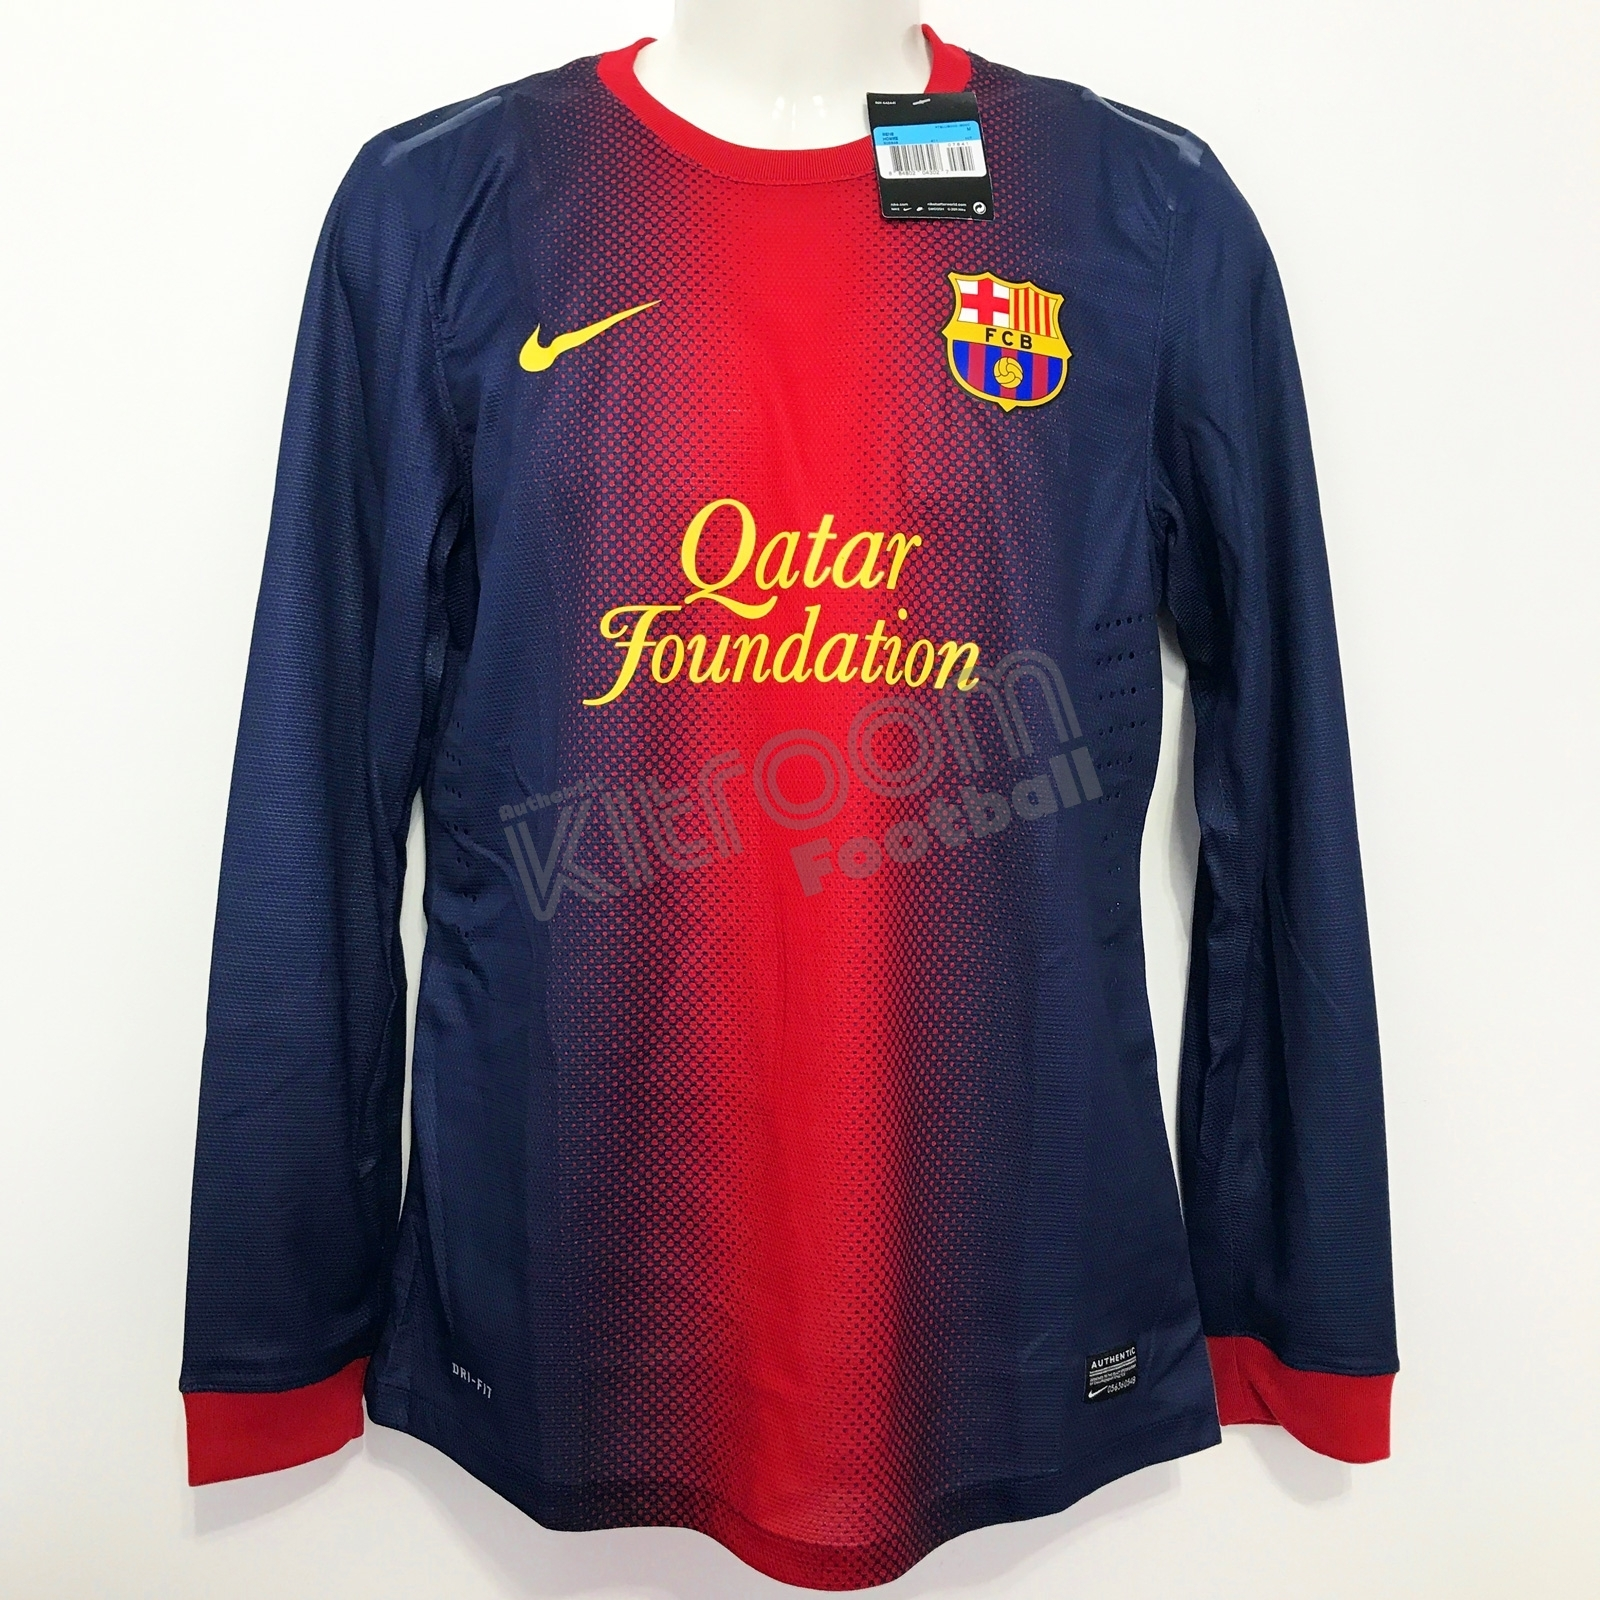 new style 0c1d8 0ebfd Details about 2012-13 Barcelona Player Issue Home L/S Shirt Nike *BNWT* M  Jersey